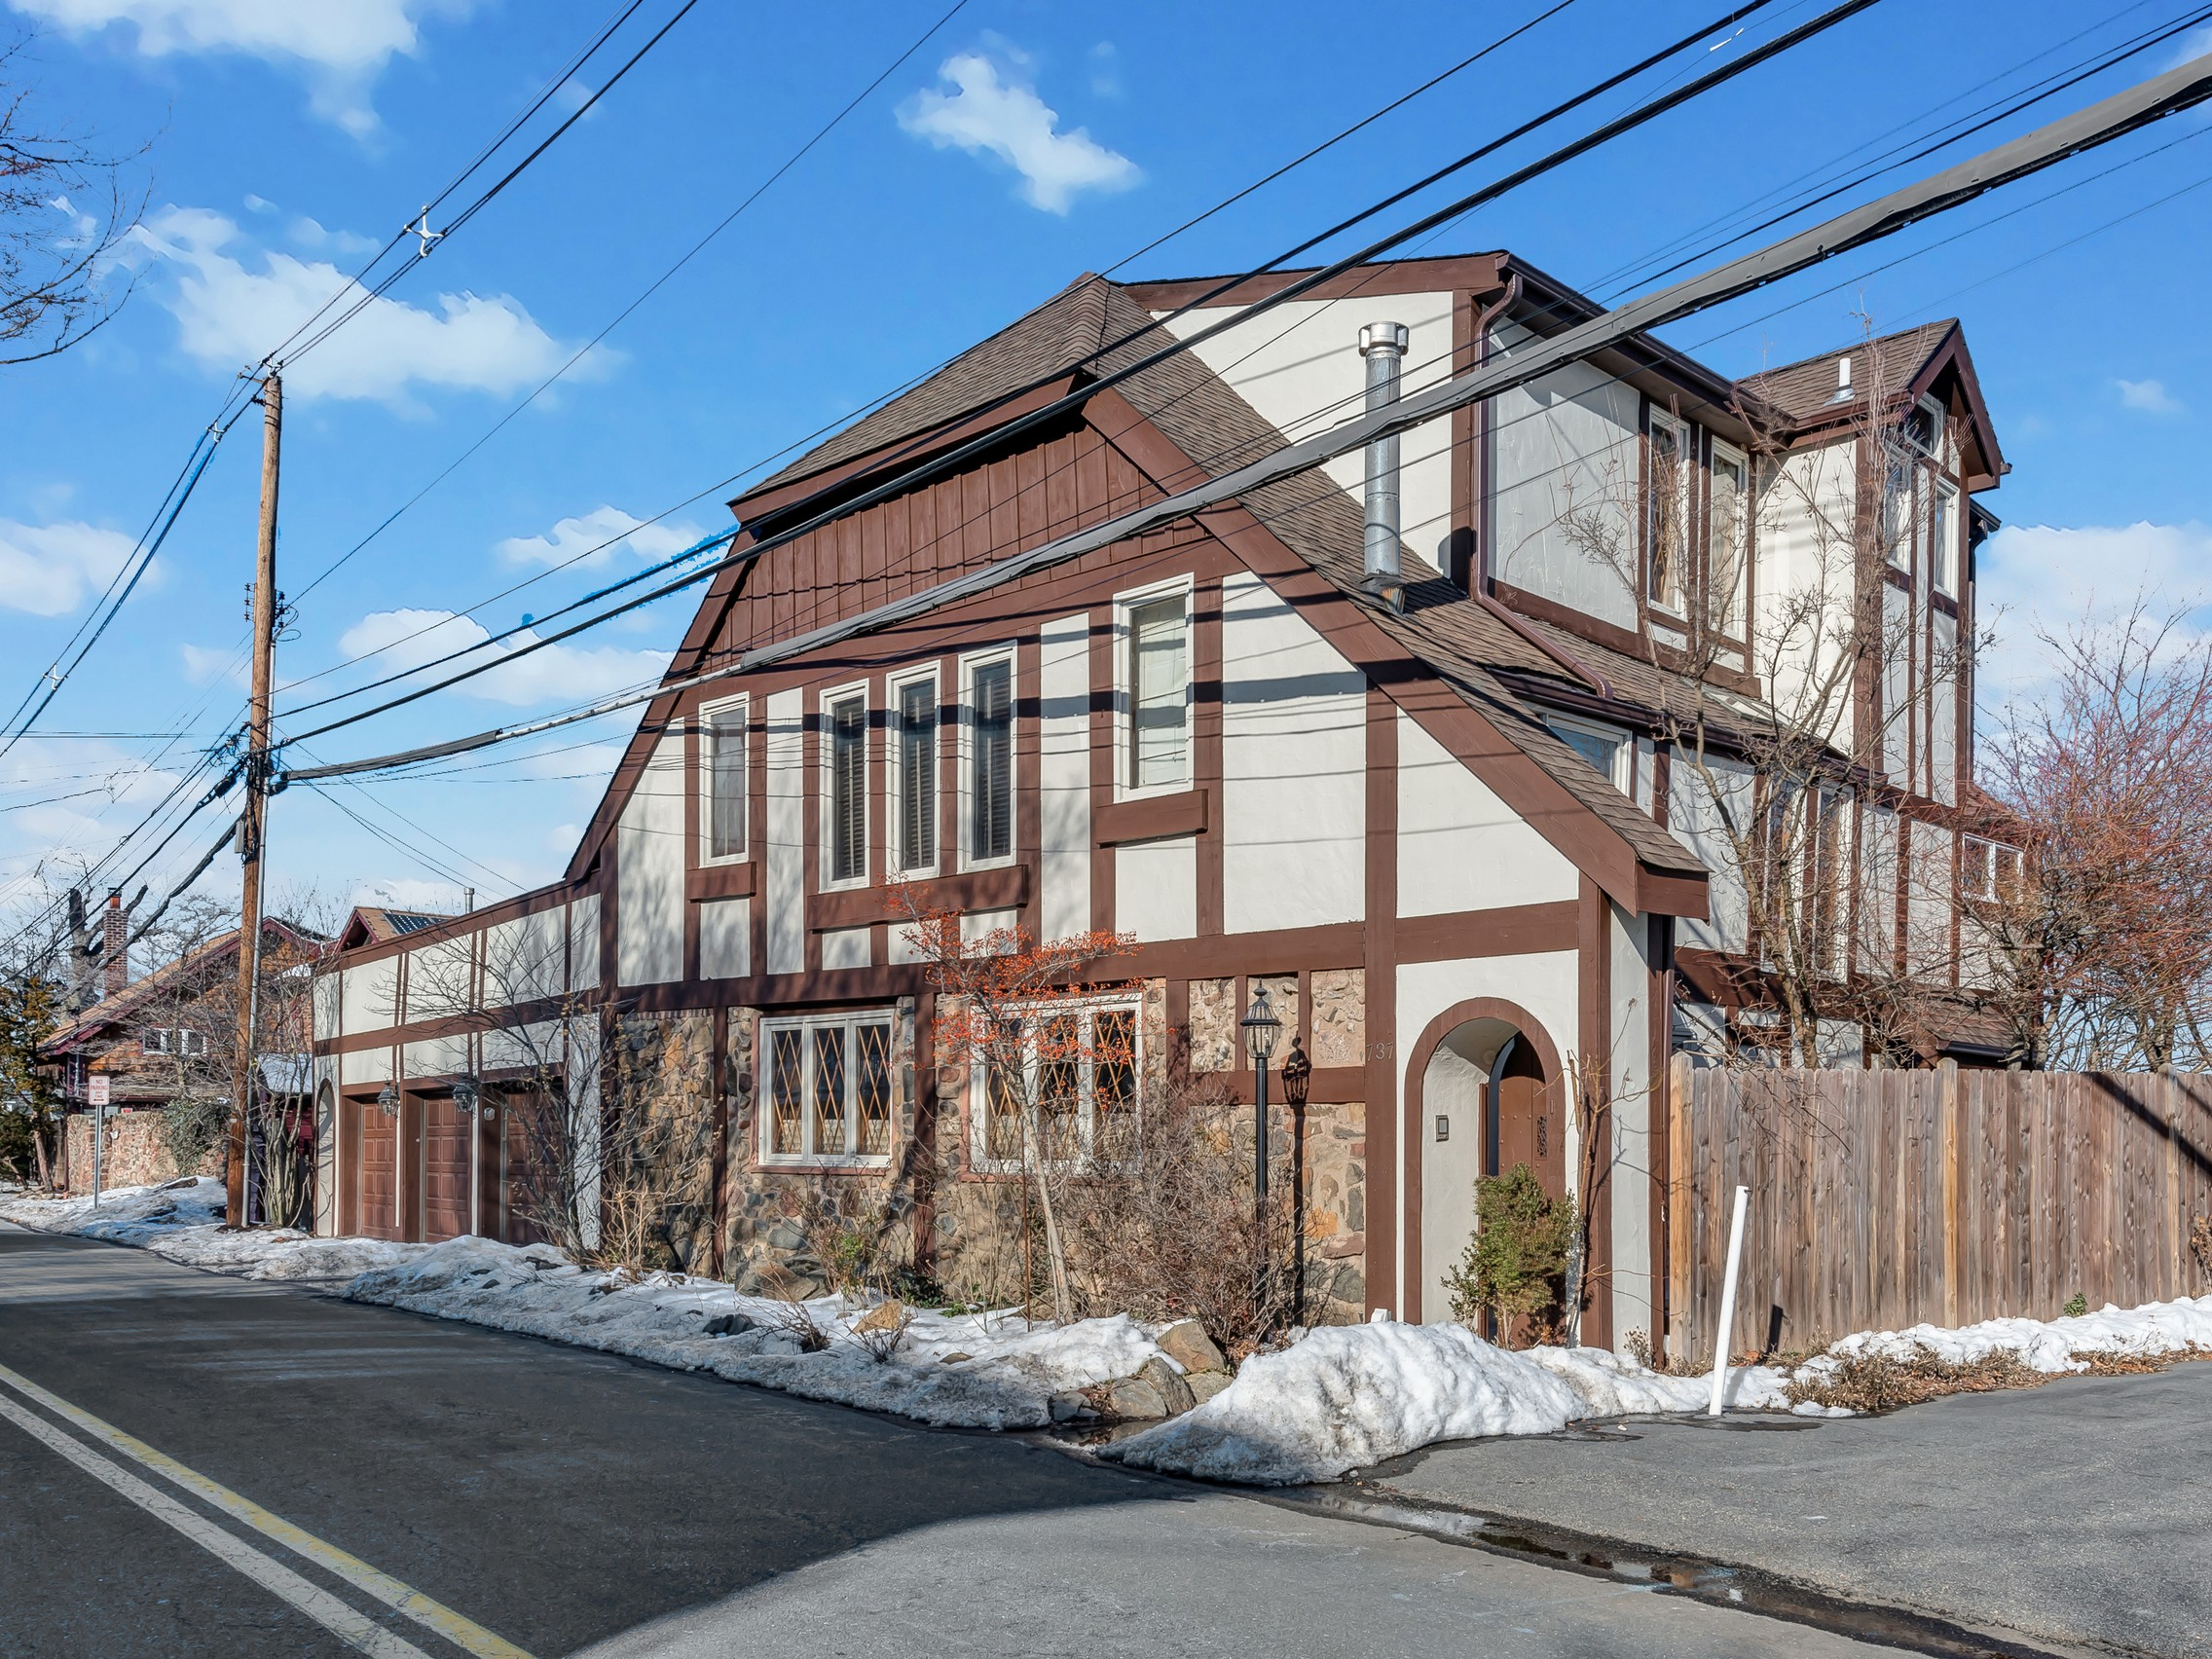 Single Family Home for Sale at SoHo-on-Hudson 737 Piermont Ave. Piermont, New York, 10968 United States